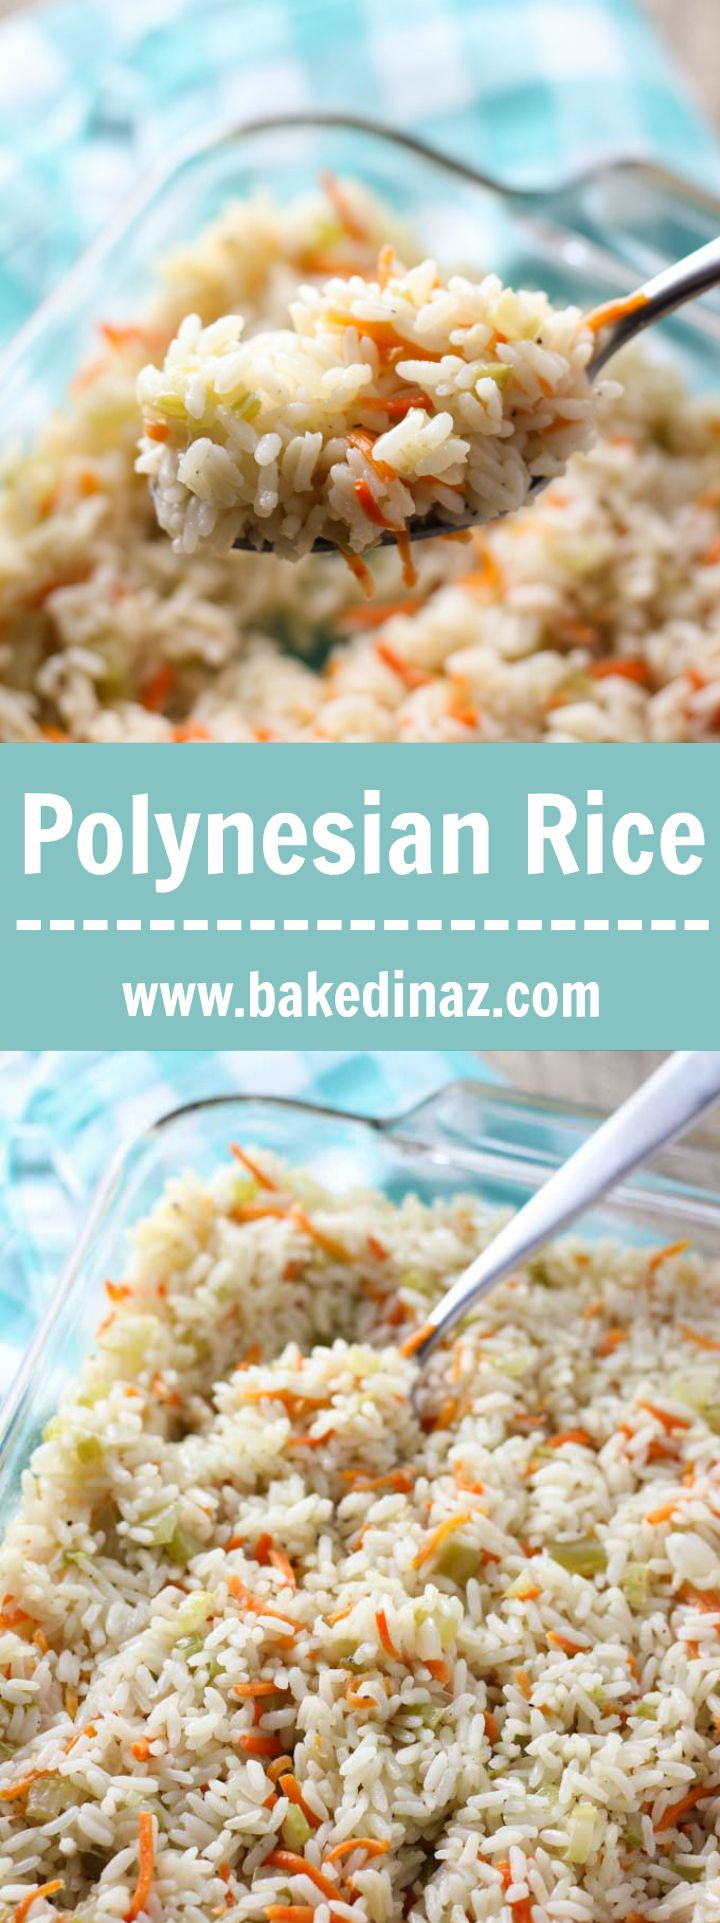 678 best With A Grain Of Rice! images on Pinterest | Cooking food ...